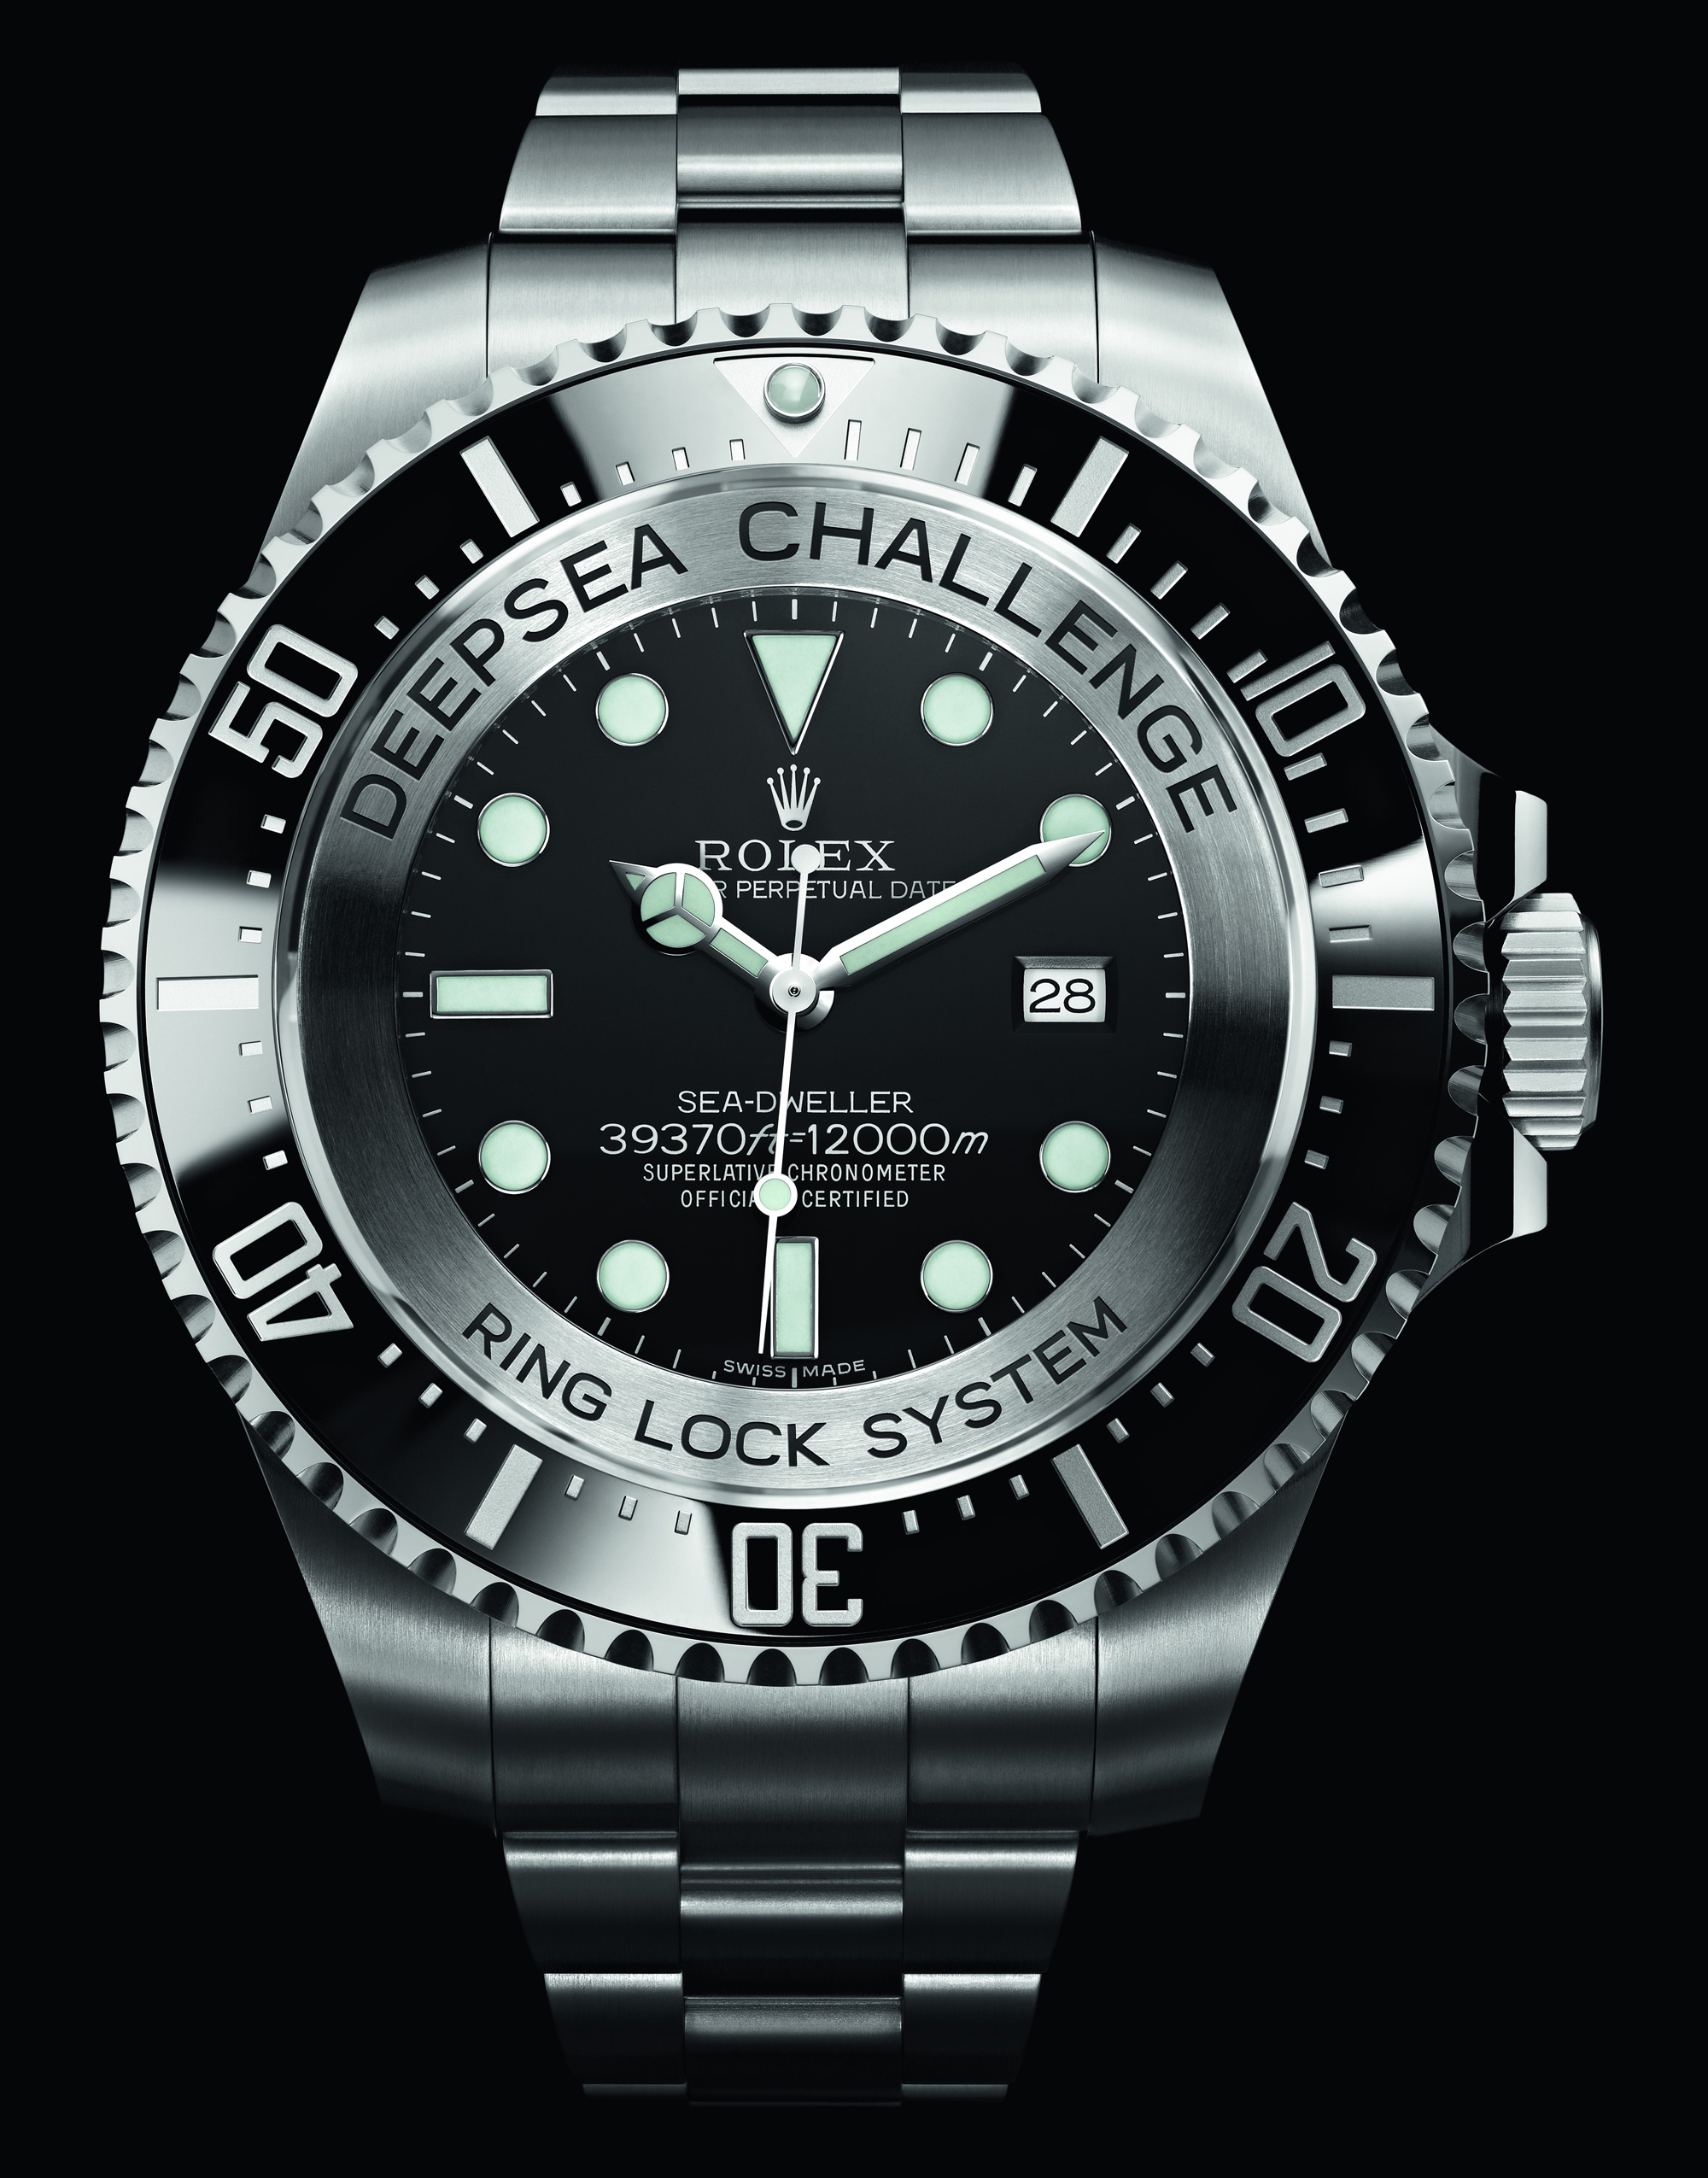 Rolex Watches World Famous